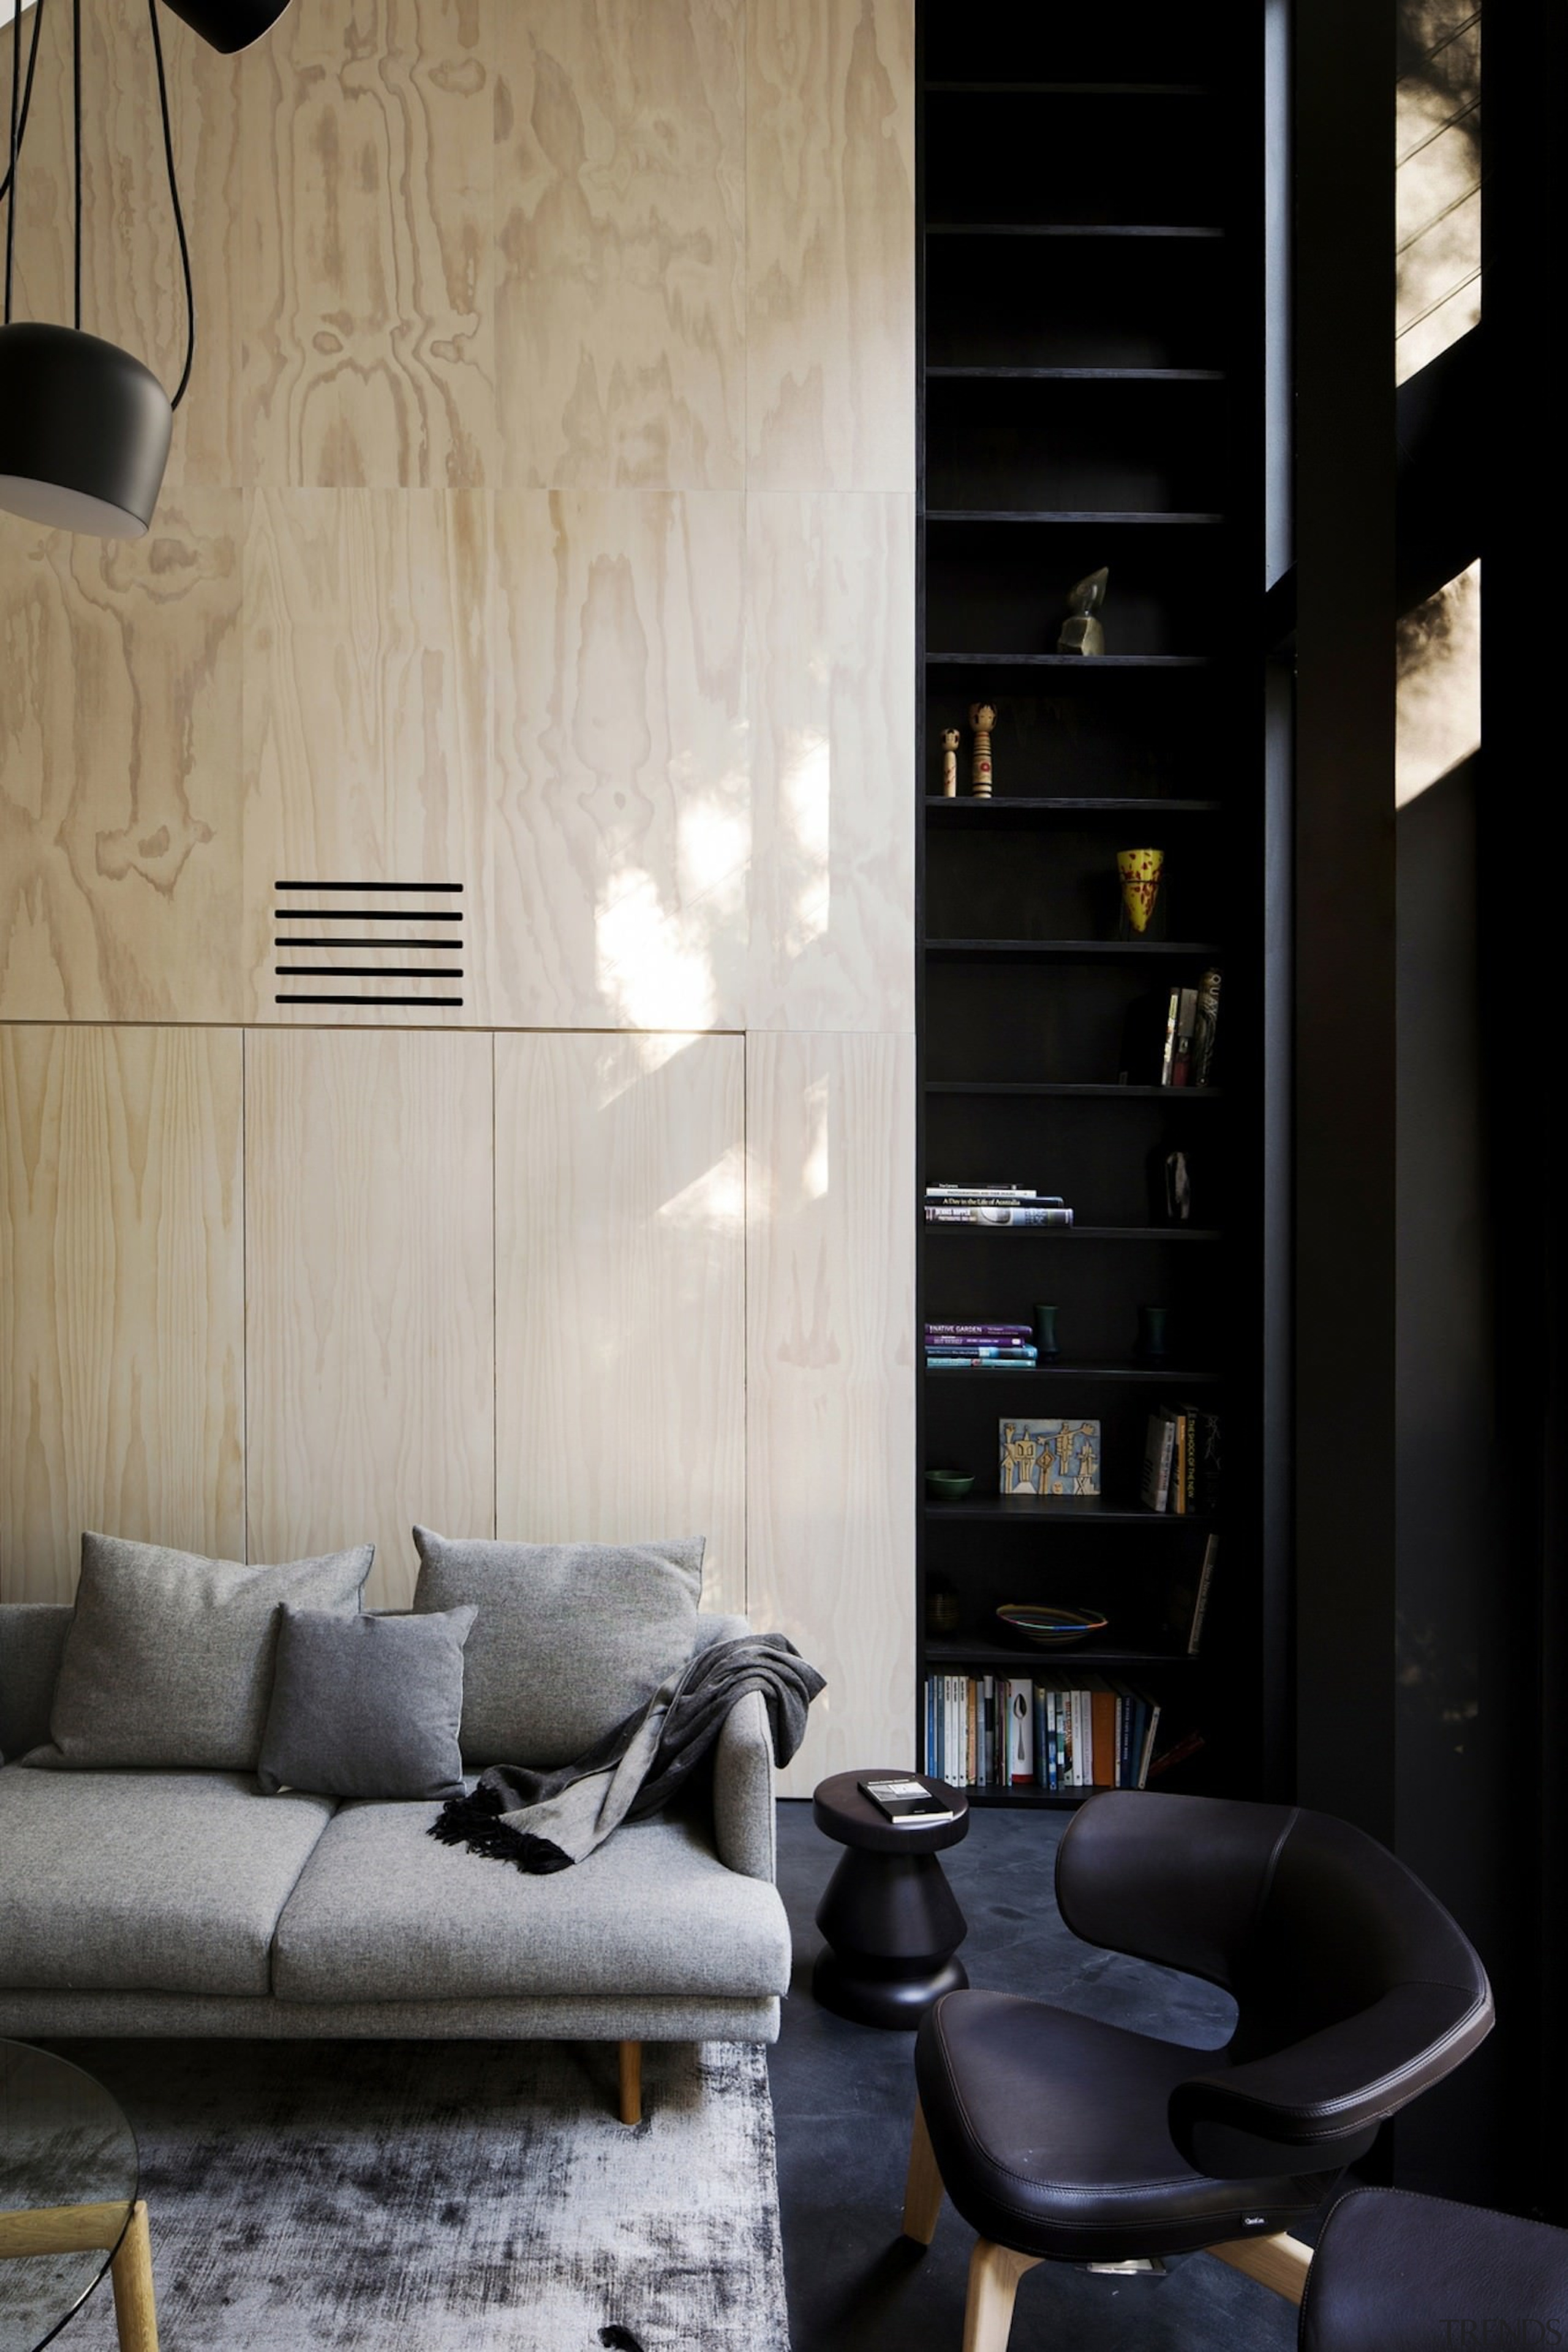 Architect: Architect PrineasPhotography by Chris Warnes architecture, floor, furniture, home, interior design, lamp, light fixture, lighting, living room, room, table, wall, window, wood, black, gray